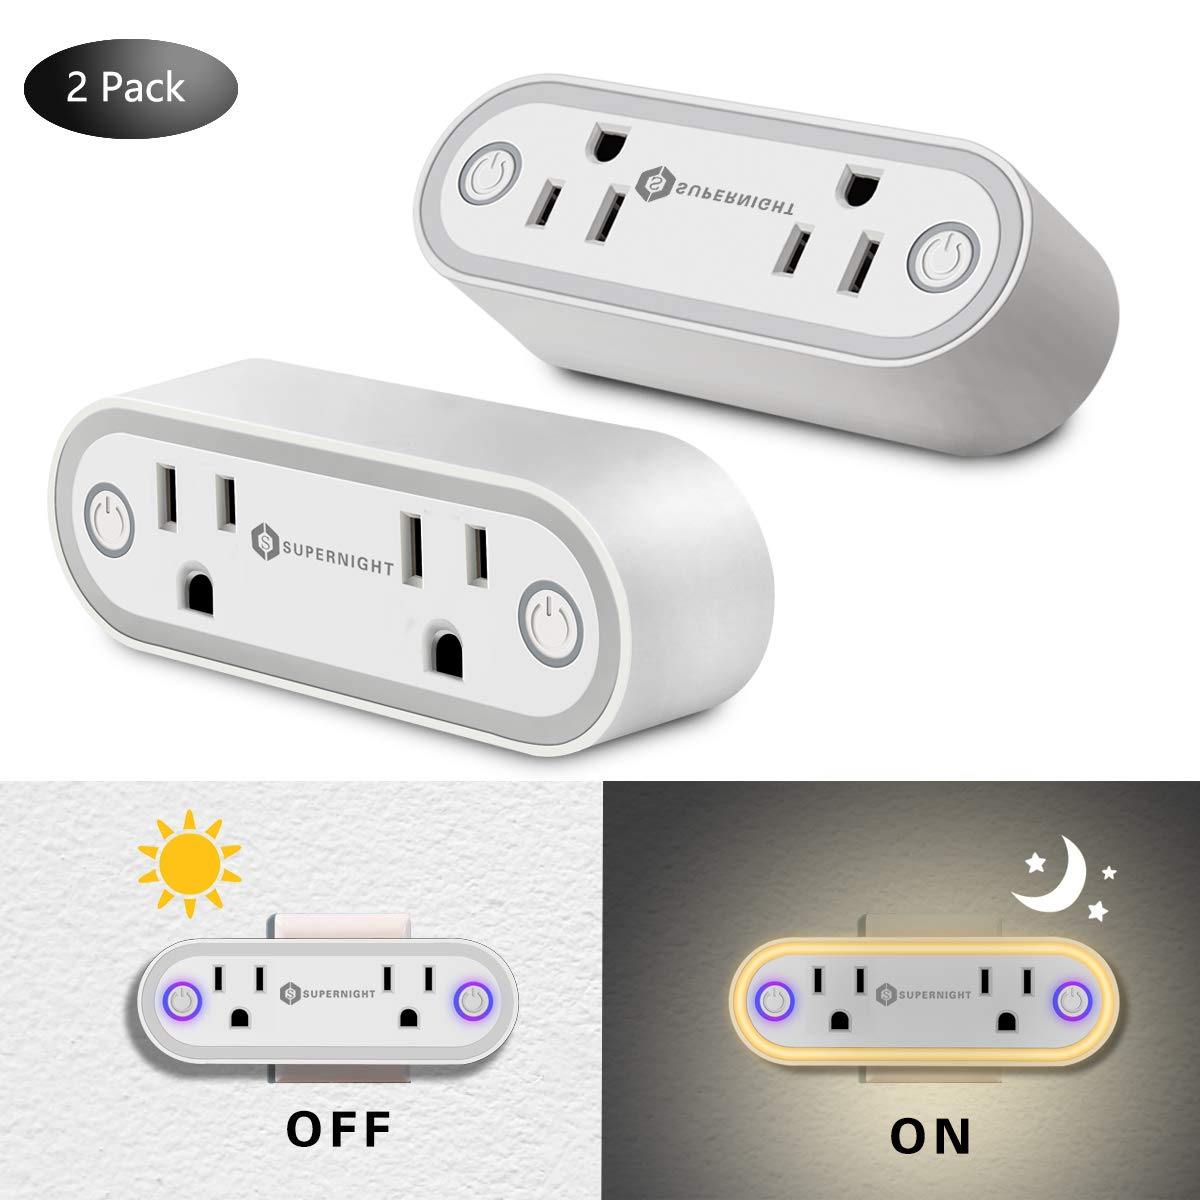 Wifi Smart Plug Outlet, SUPERNIGHT 2.4GHz Wi-Fi Mini Socket with Dusk to Dawn Sensor Night Light, Works with Amazon Alexa,Google Home, Upgraded App and Voice Control, No Hub Required (2 Packs)